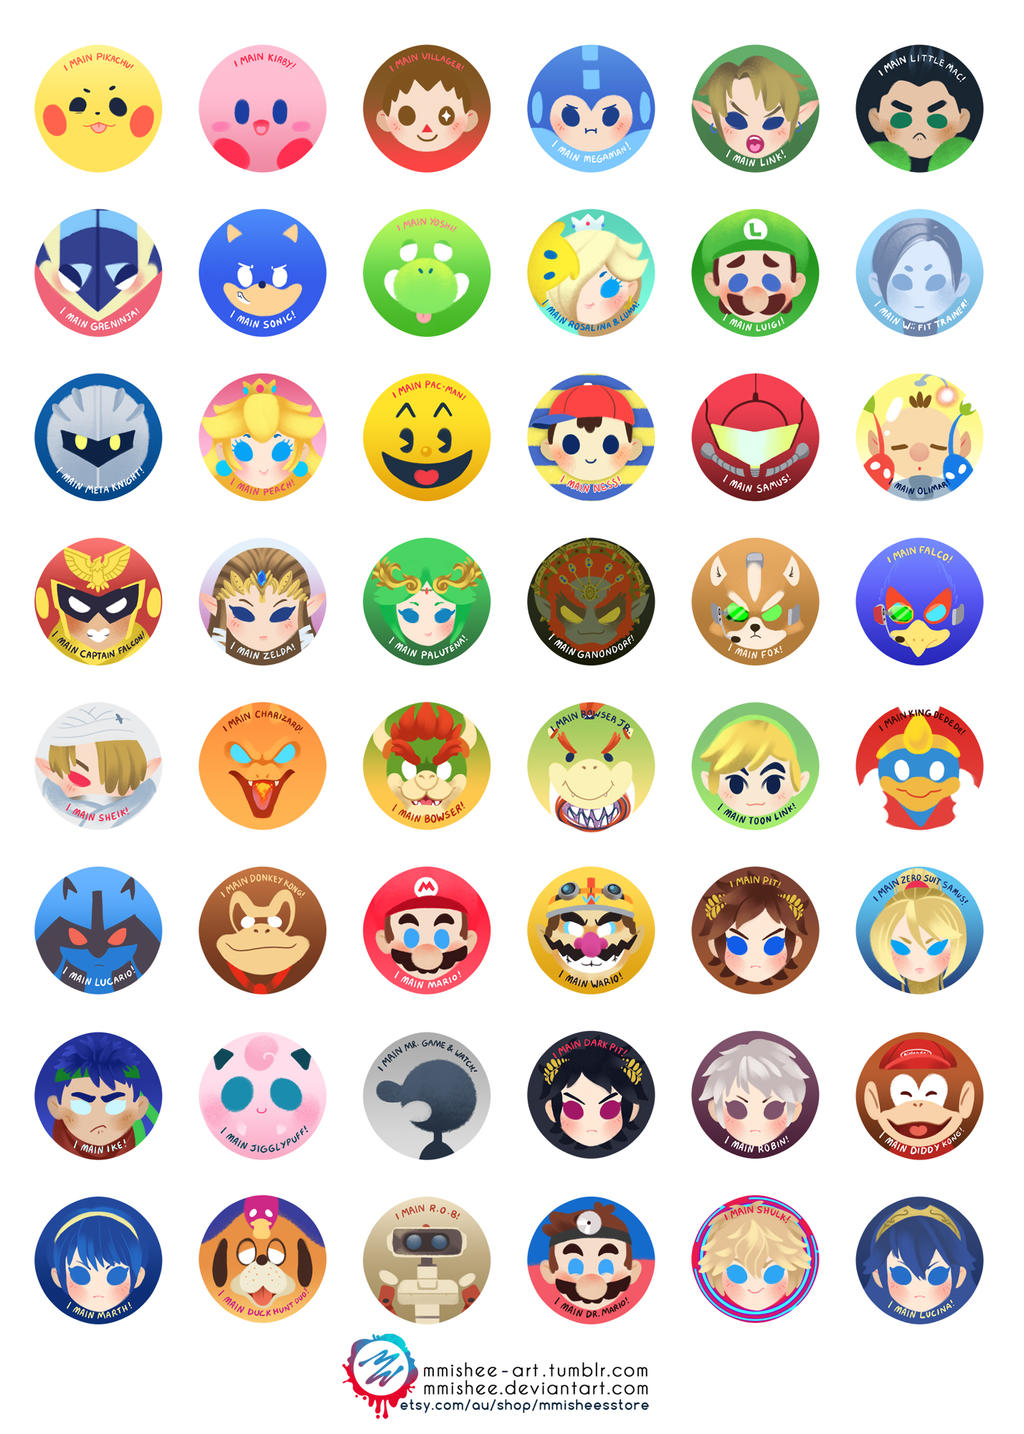 Super Smash Bros buttons by mmishee